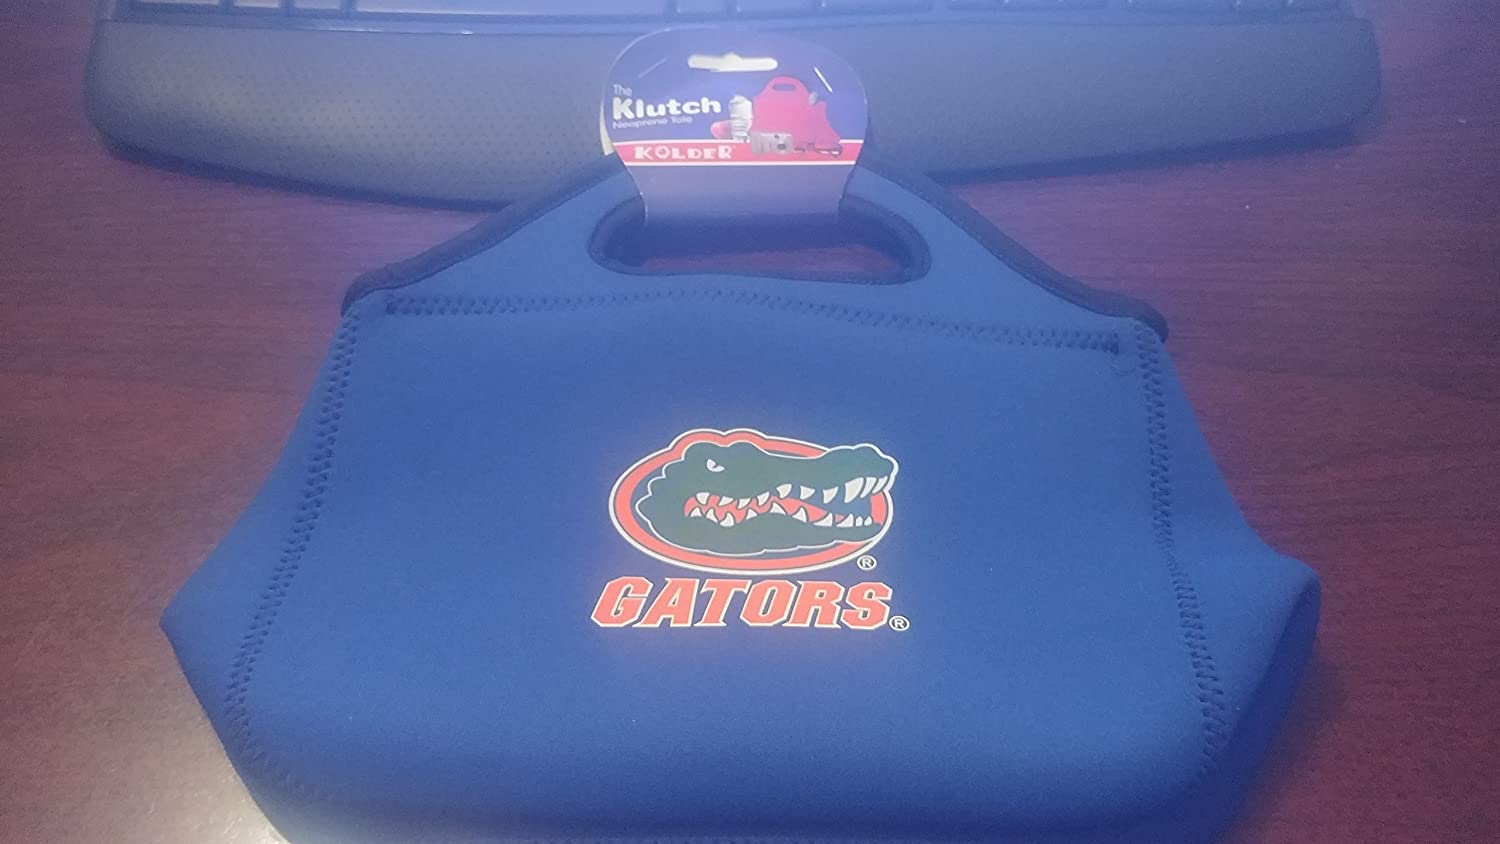 Gators Kolder The Klutch Neoprene Tote or Handbag University of Florida Officially Licensed Collegiate Products